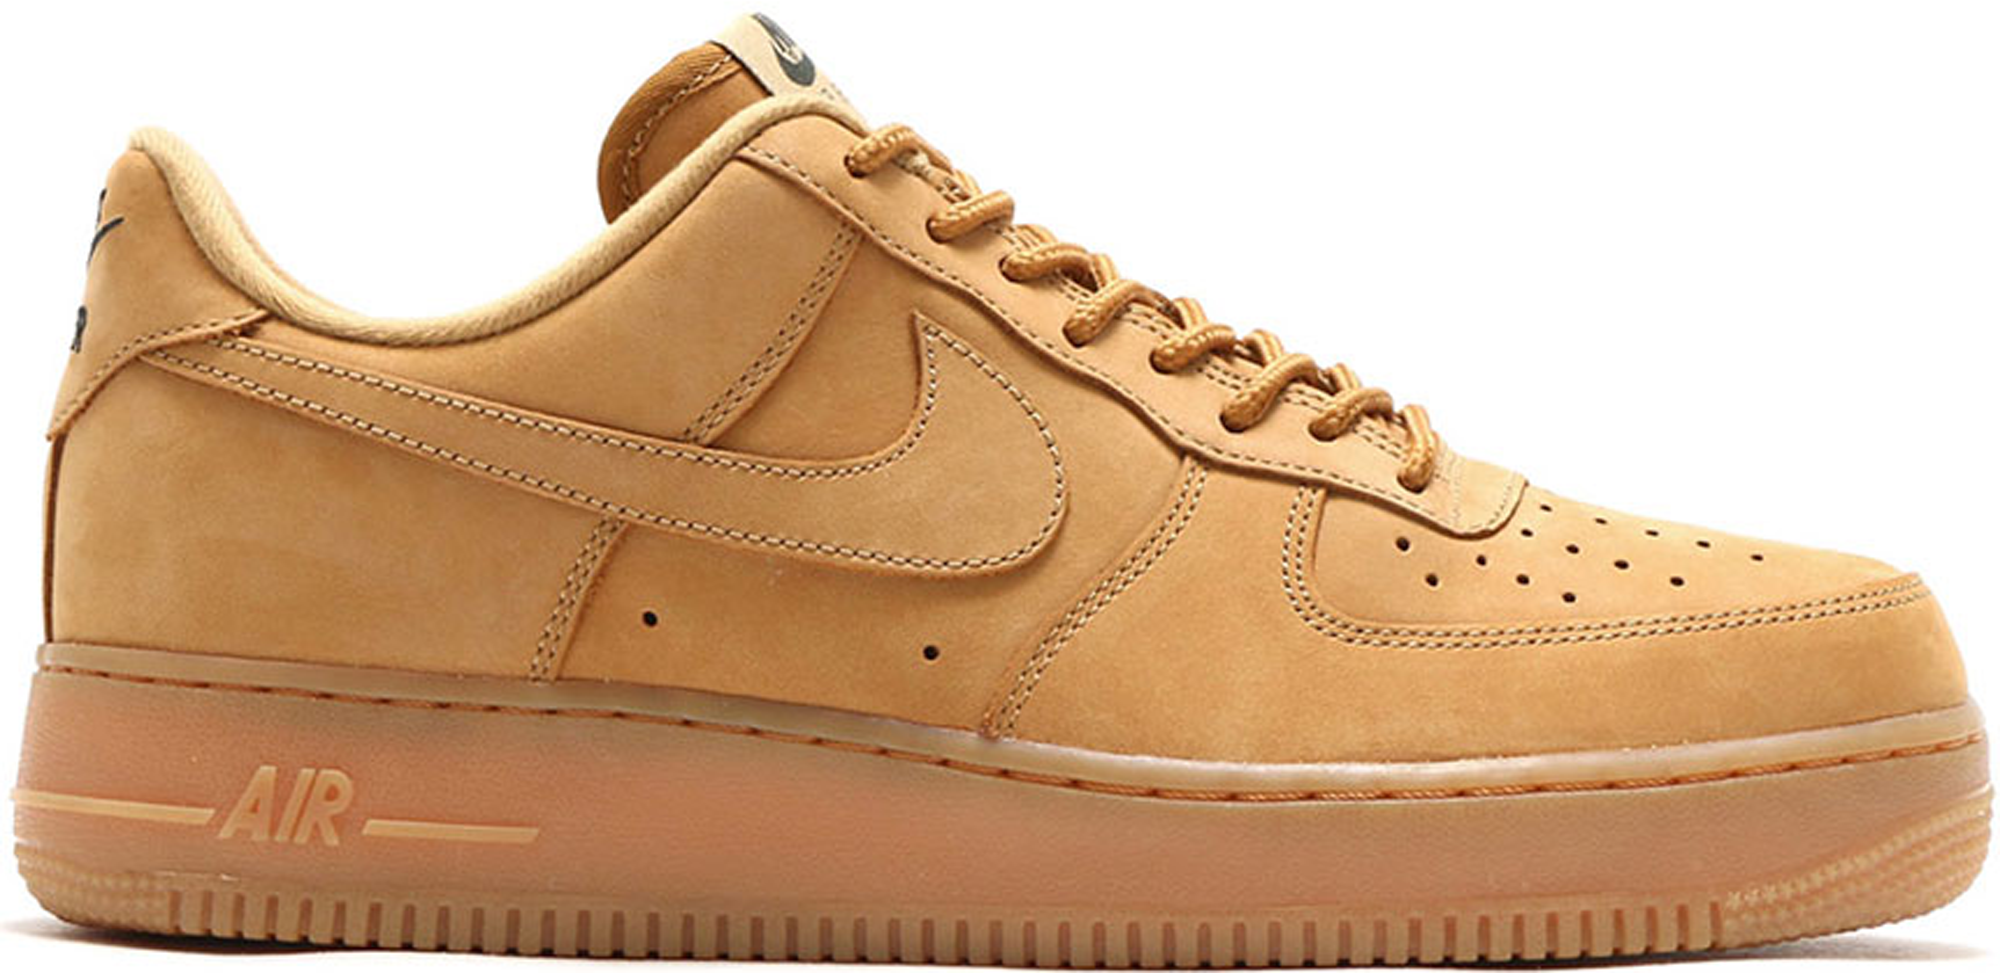 Air Force 1 Low Flax (2017)